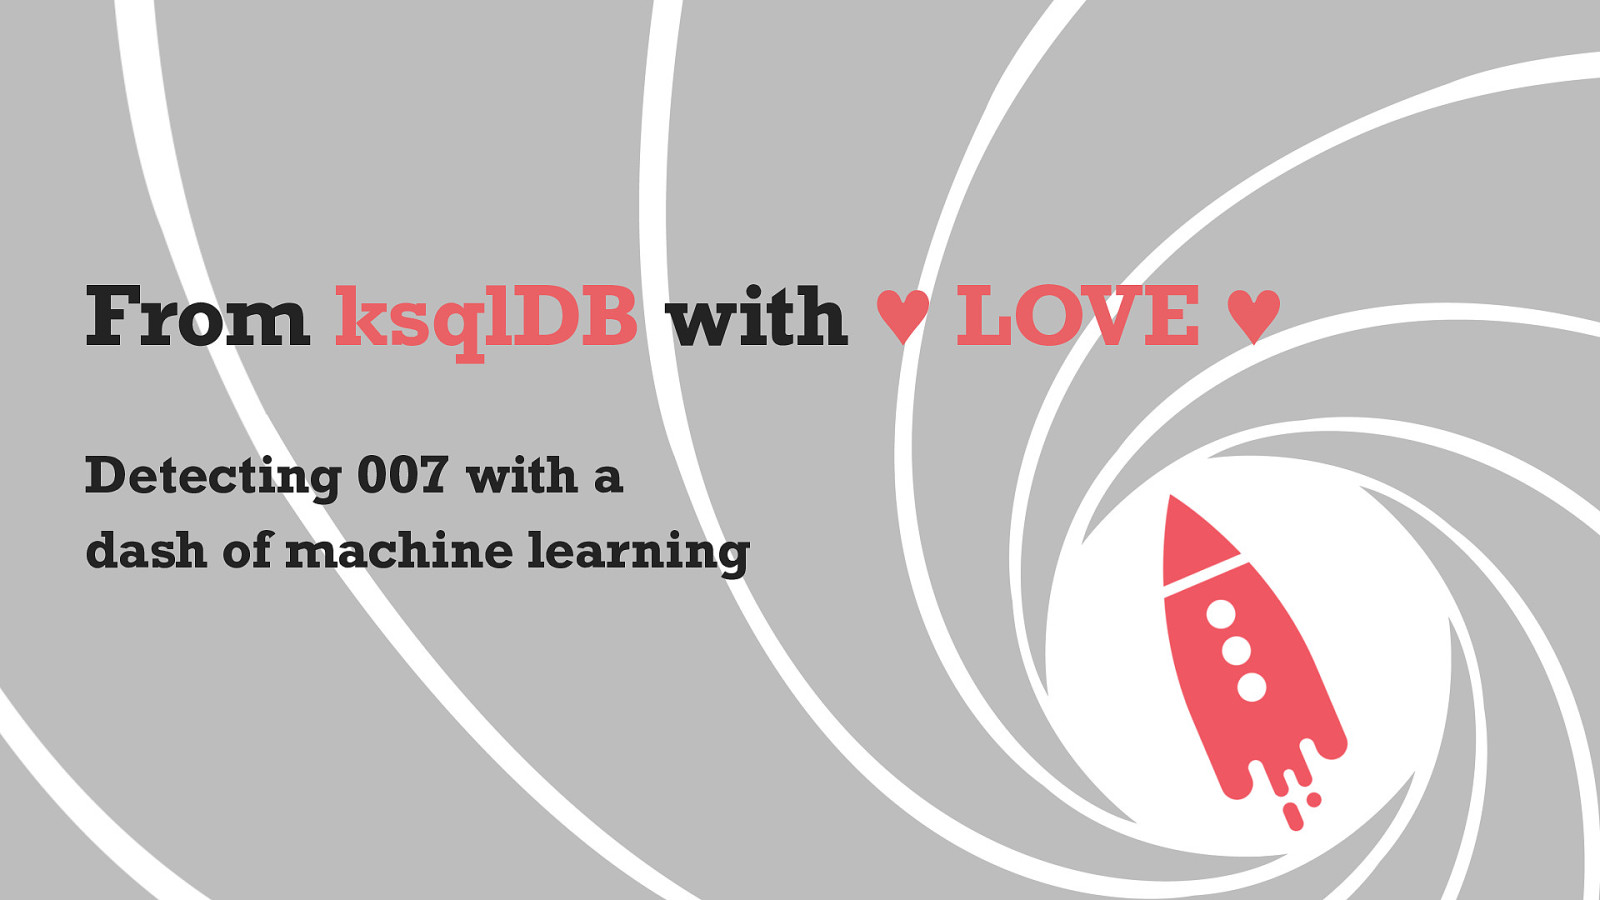 From ksqlDB with LOVE: Detecting 007 with a Dash of Machine Learning